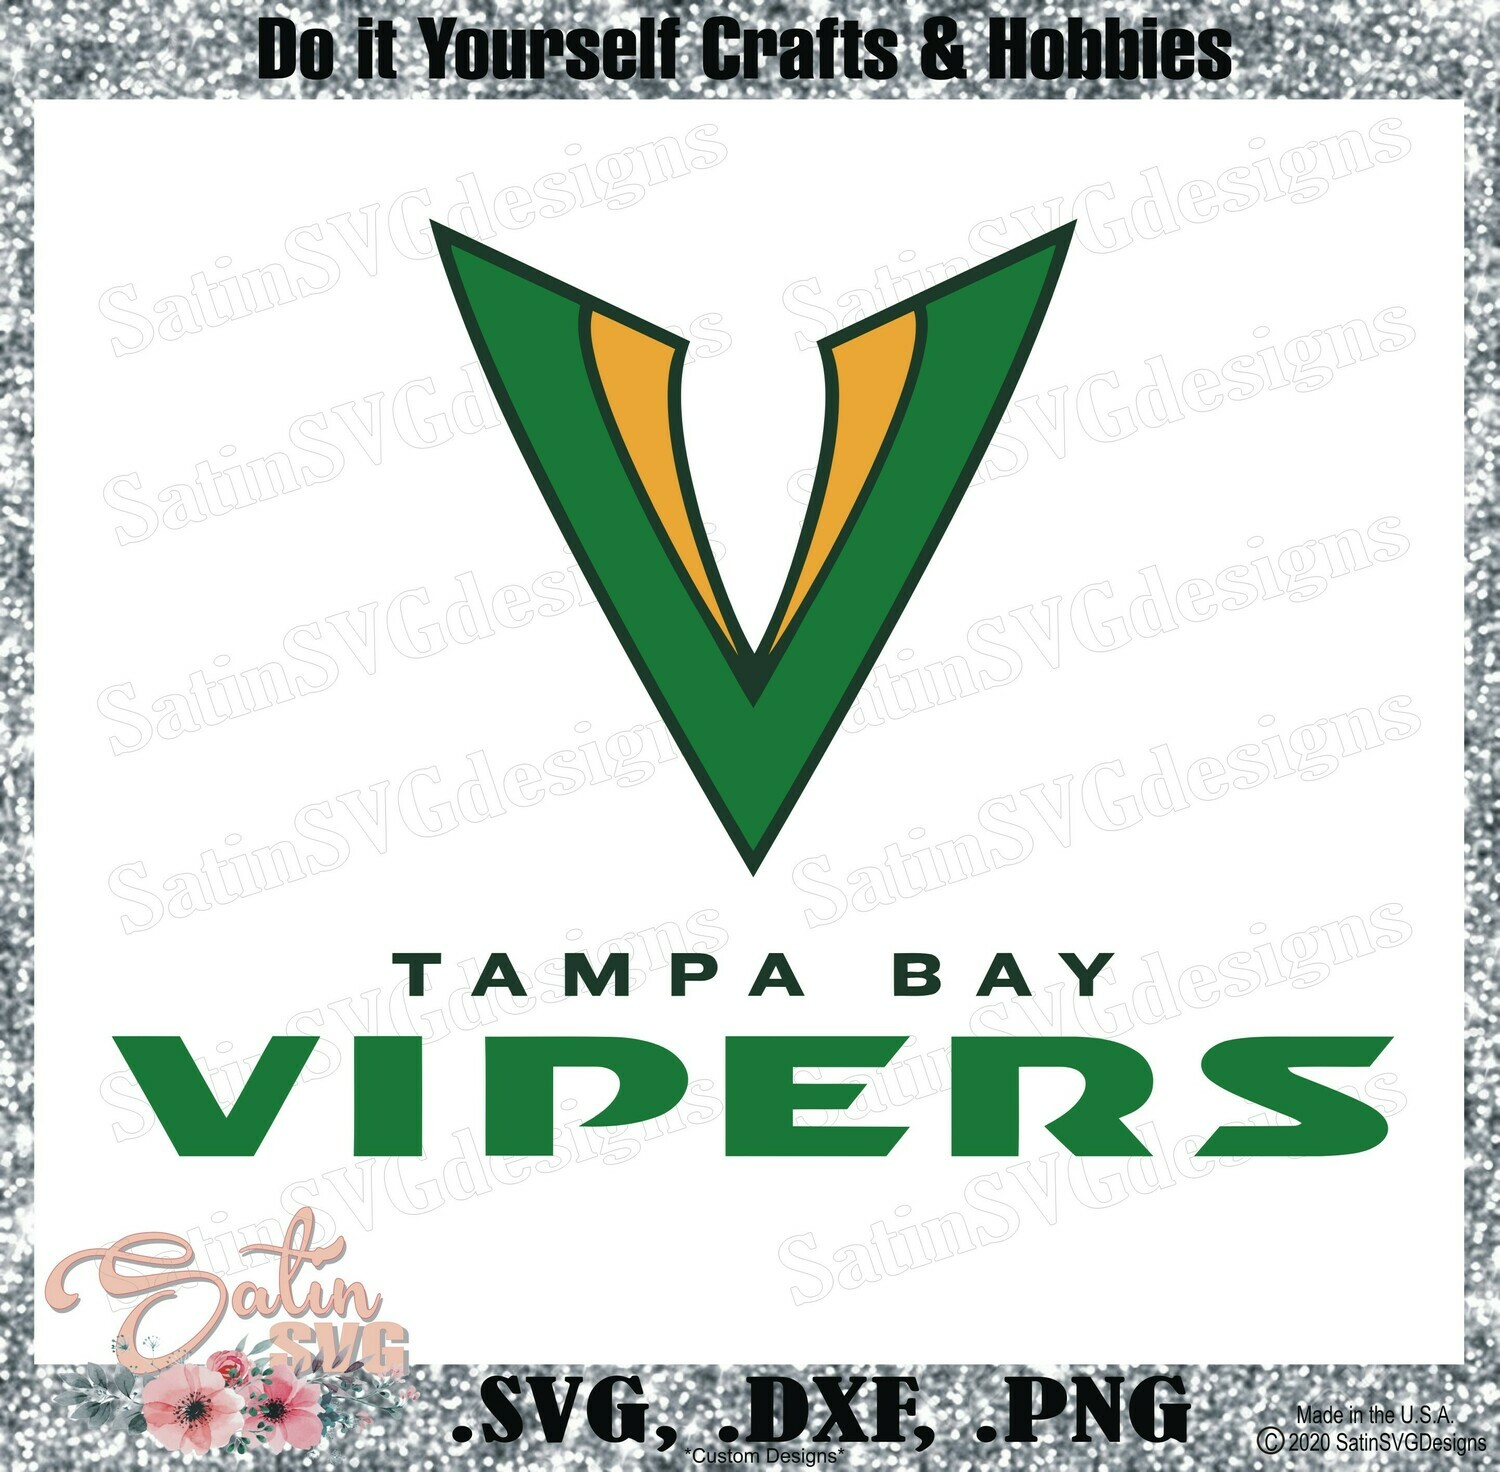 Tampa Bay Vipers XFL Football NEW Custom Logo Designs. SVG Files, Cricut, Silhouette Studio, Digital Cut Files, Infusible Ink